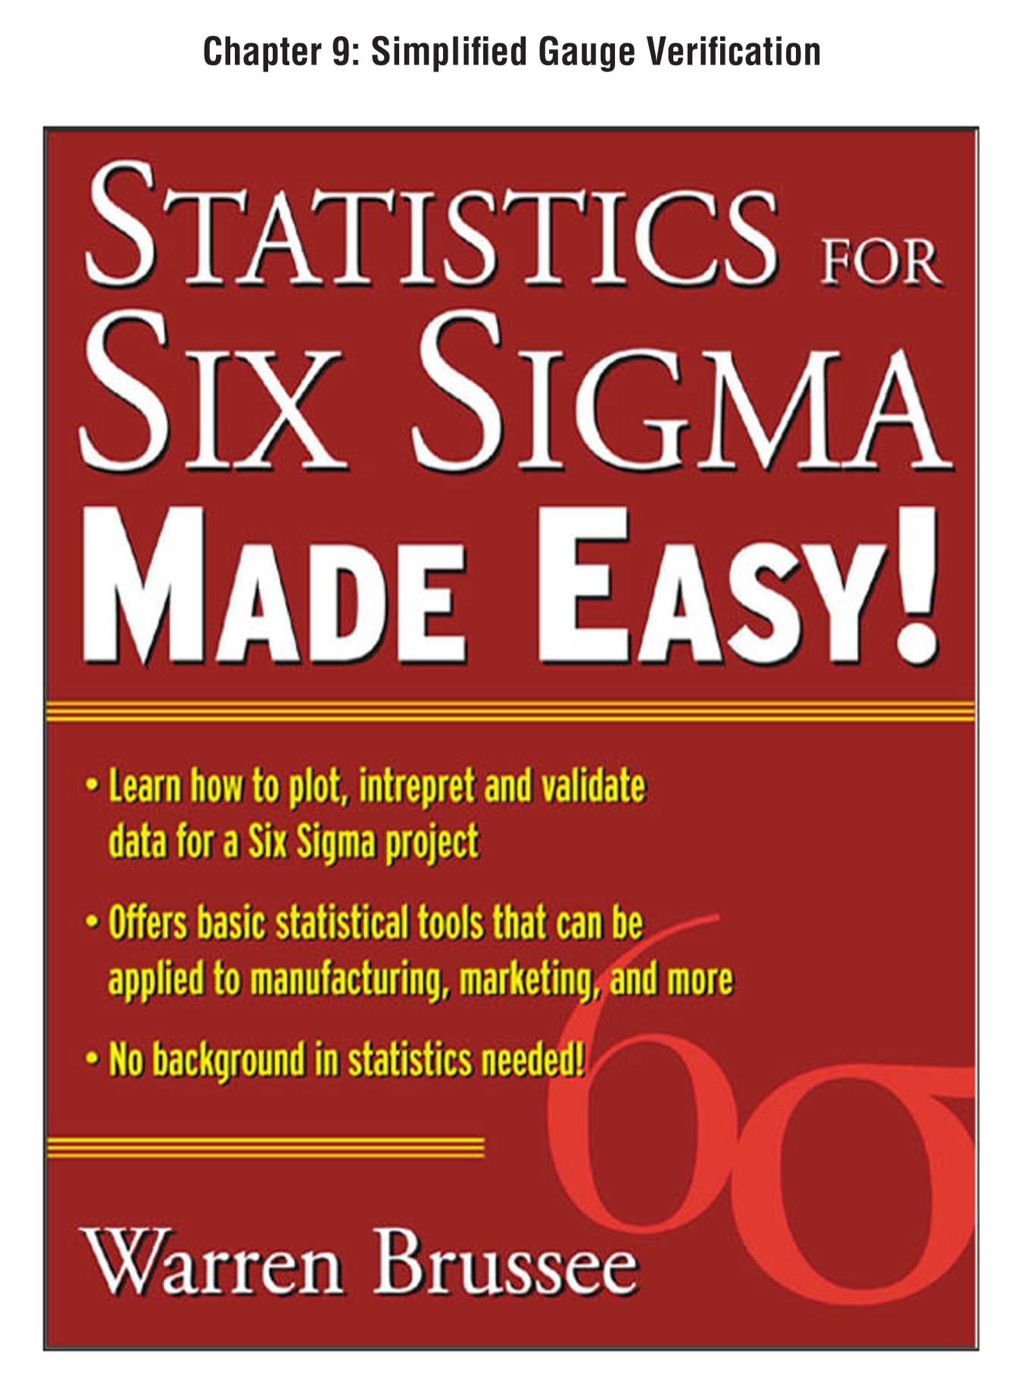 hight resolution of statistics for six sigma made easy chapter 9 simplified gauge verification ebook